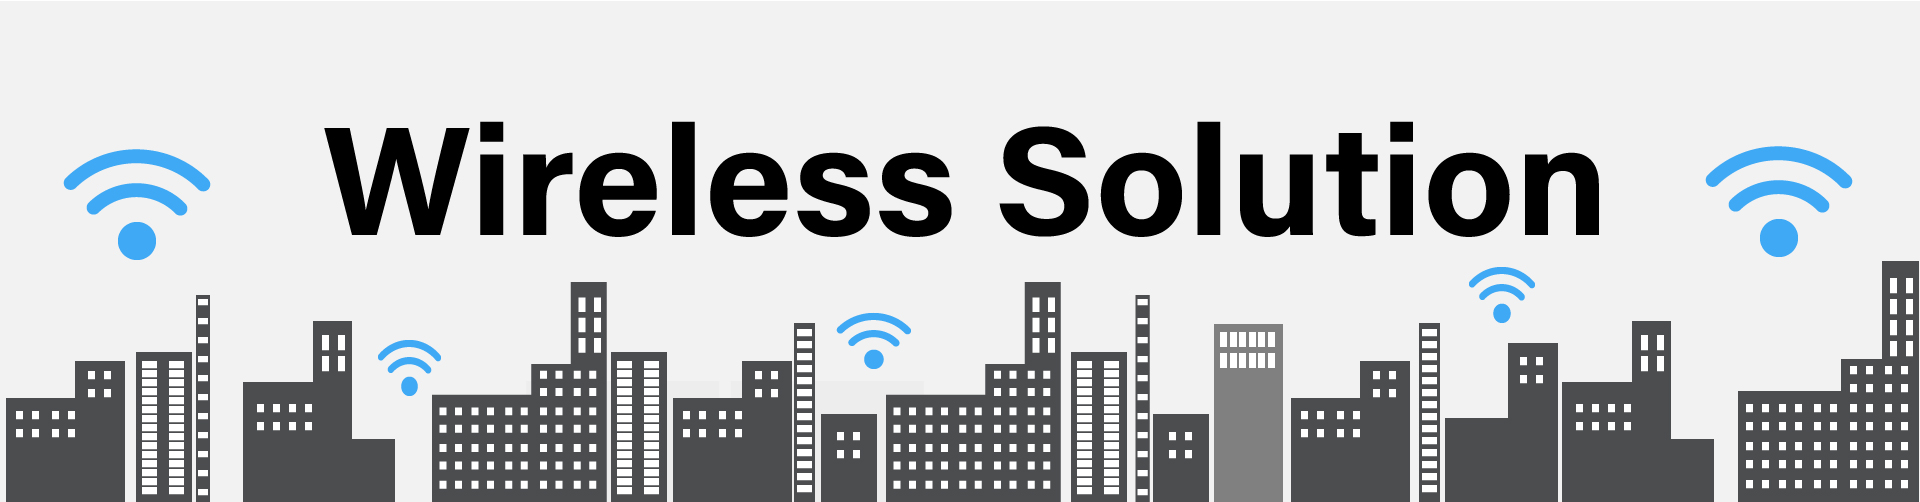 Wireless-Solution2